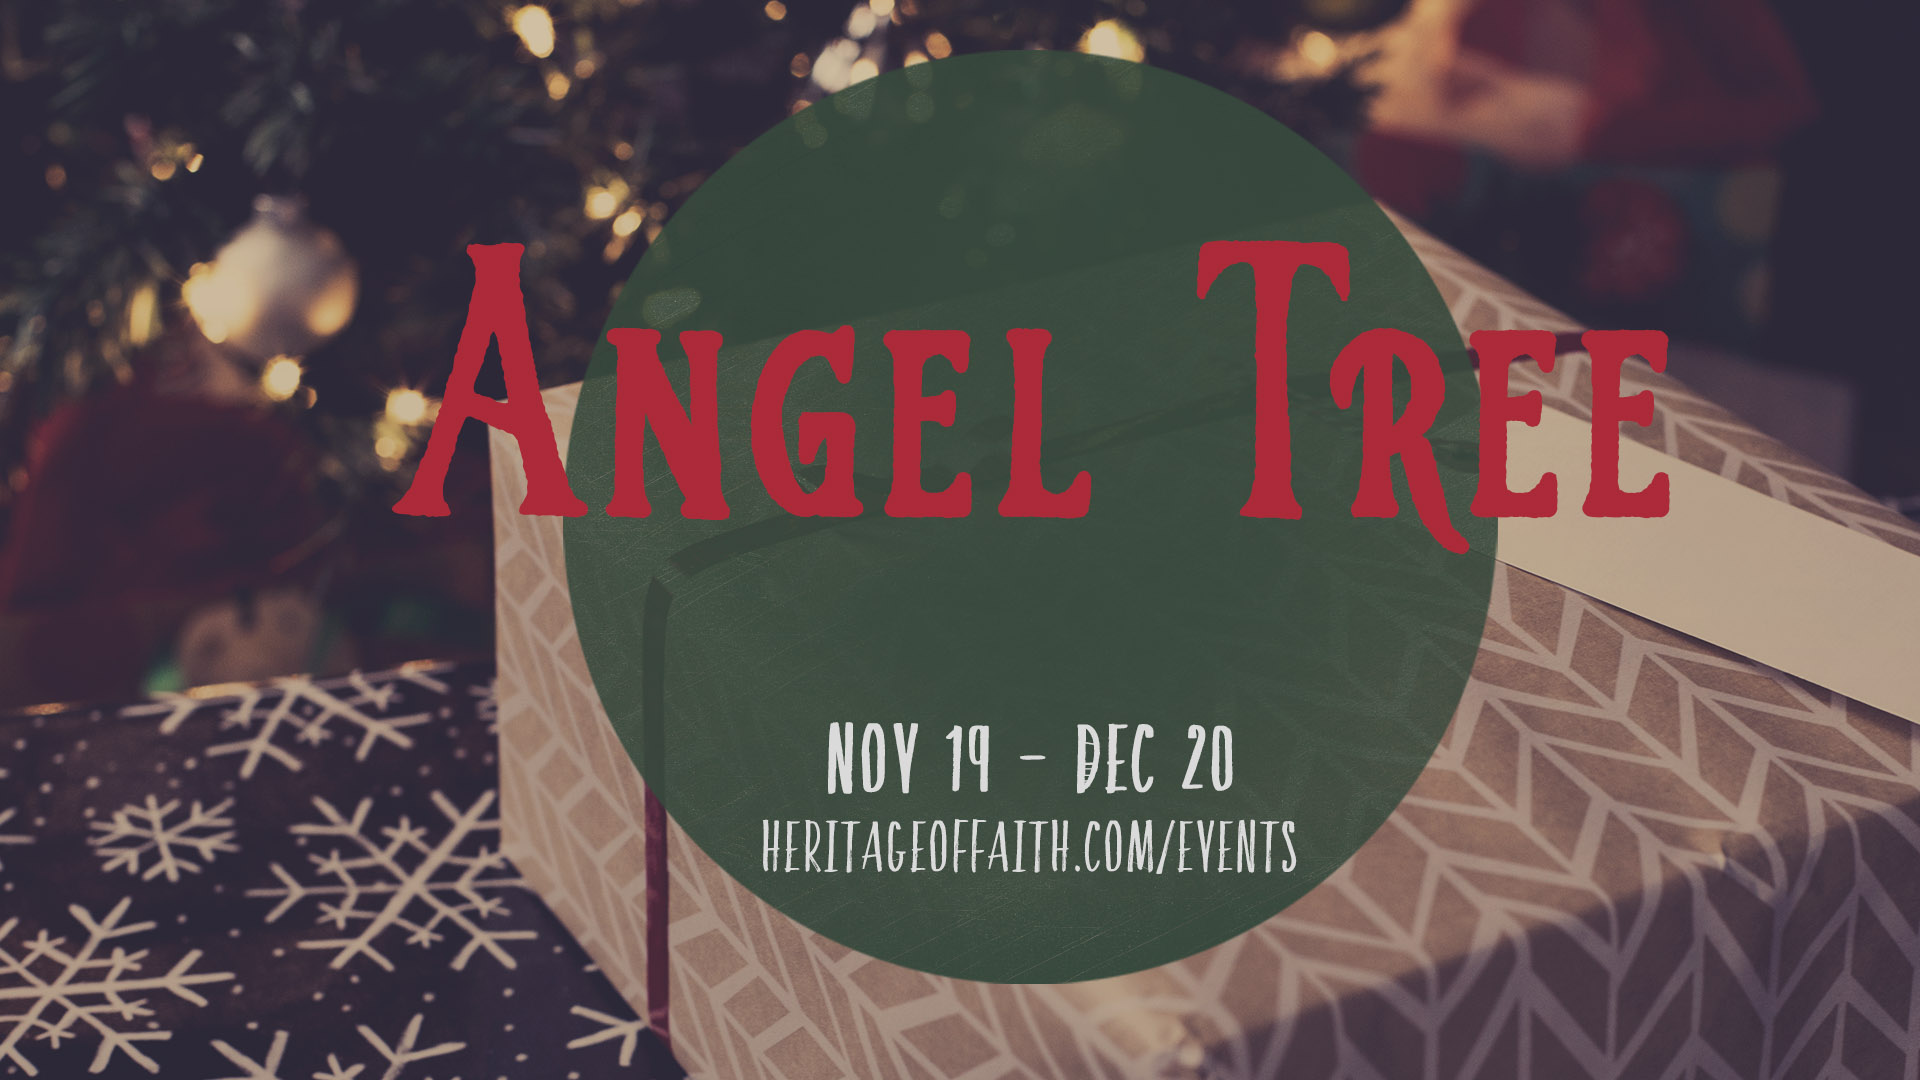 Angel tree 2017   annc 2